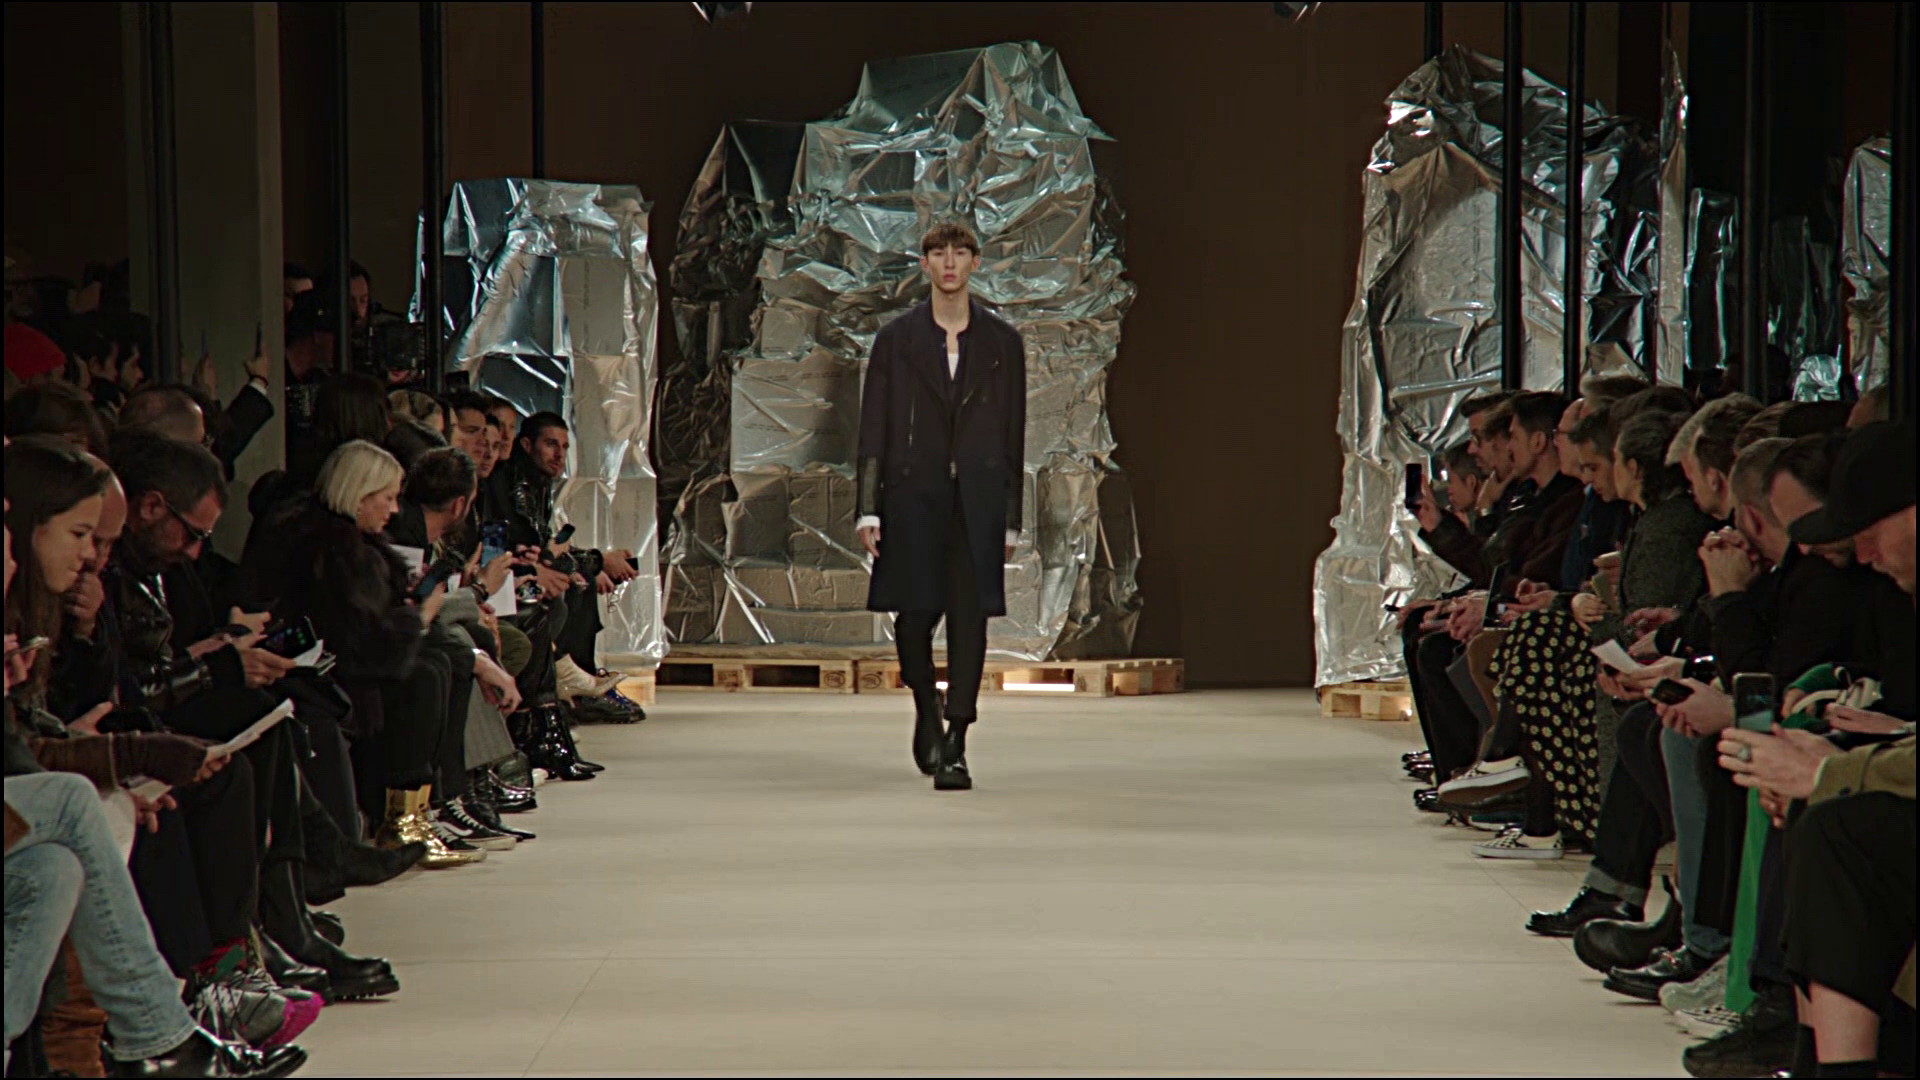 Neil Barrett Fall Winter 2020 Men's Fashion Show - Milan Fashion Week